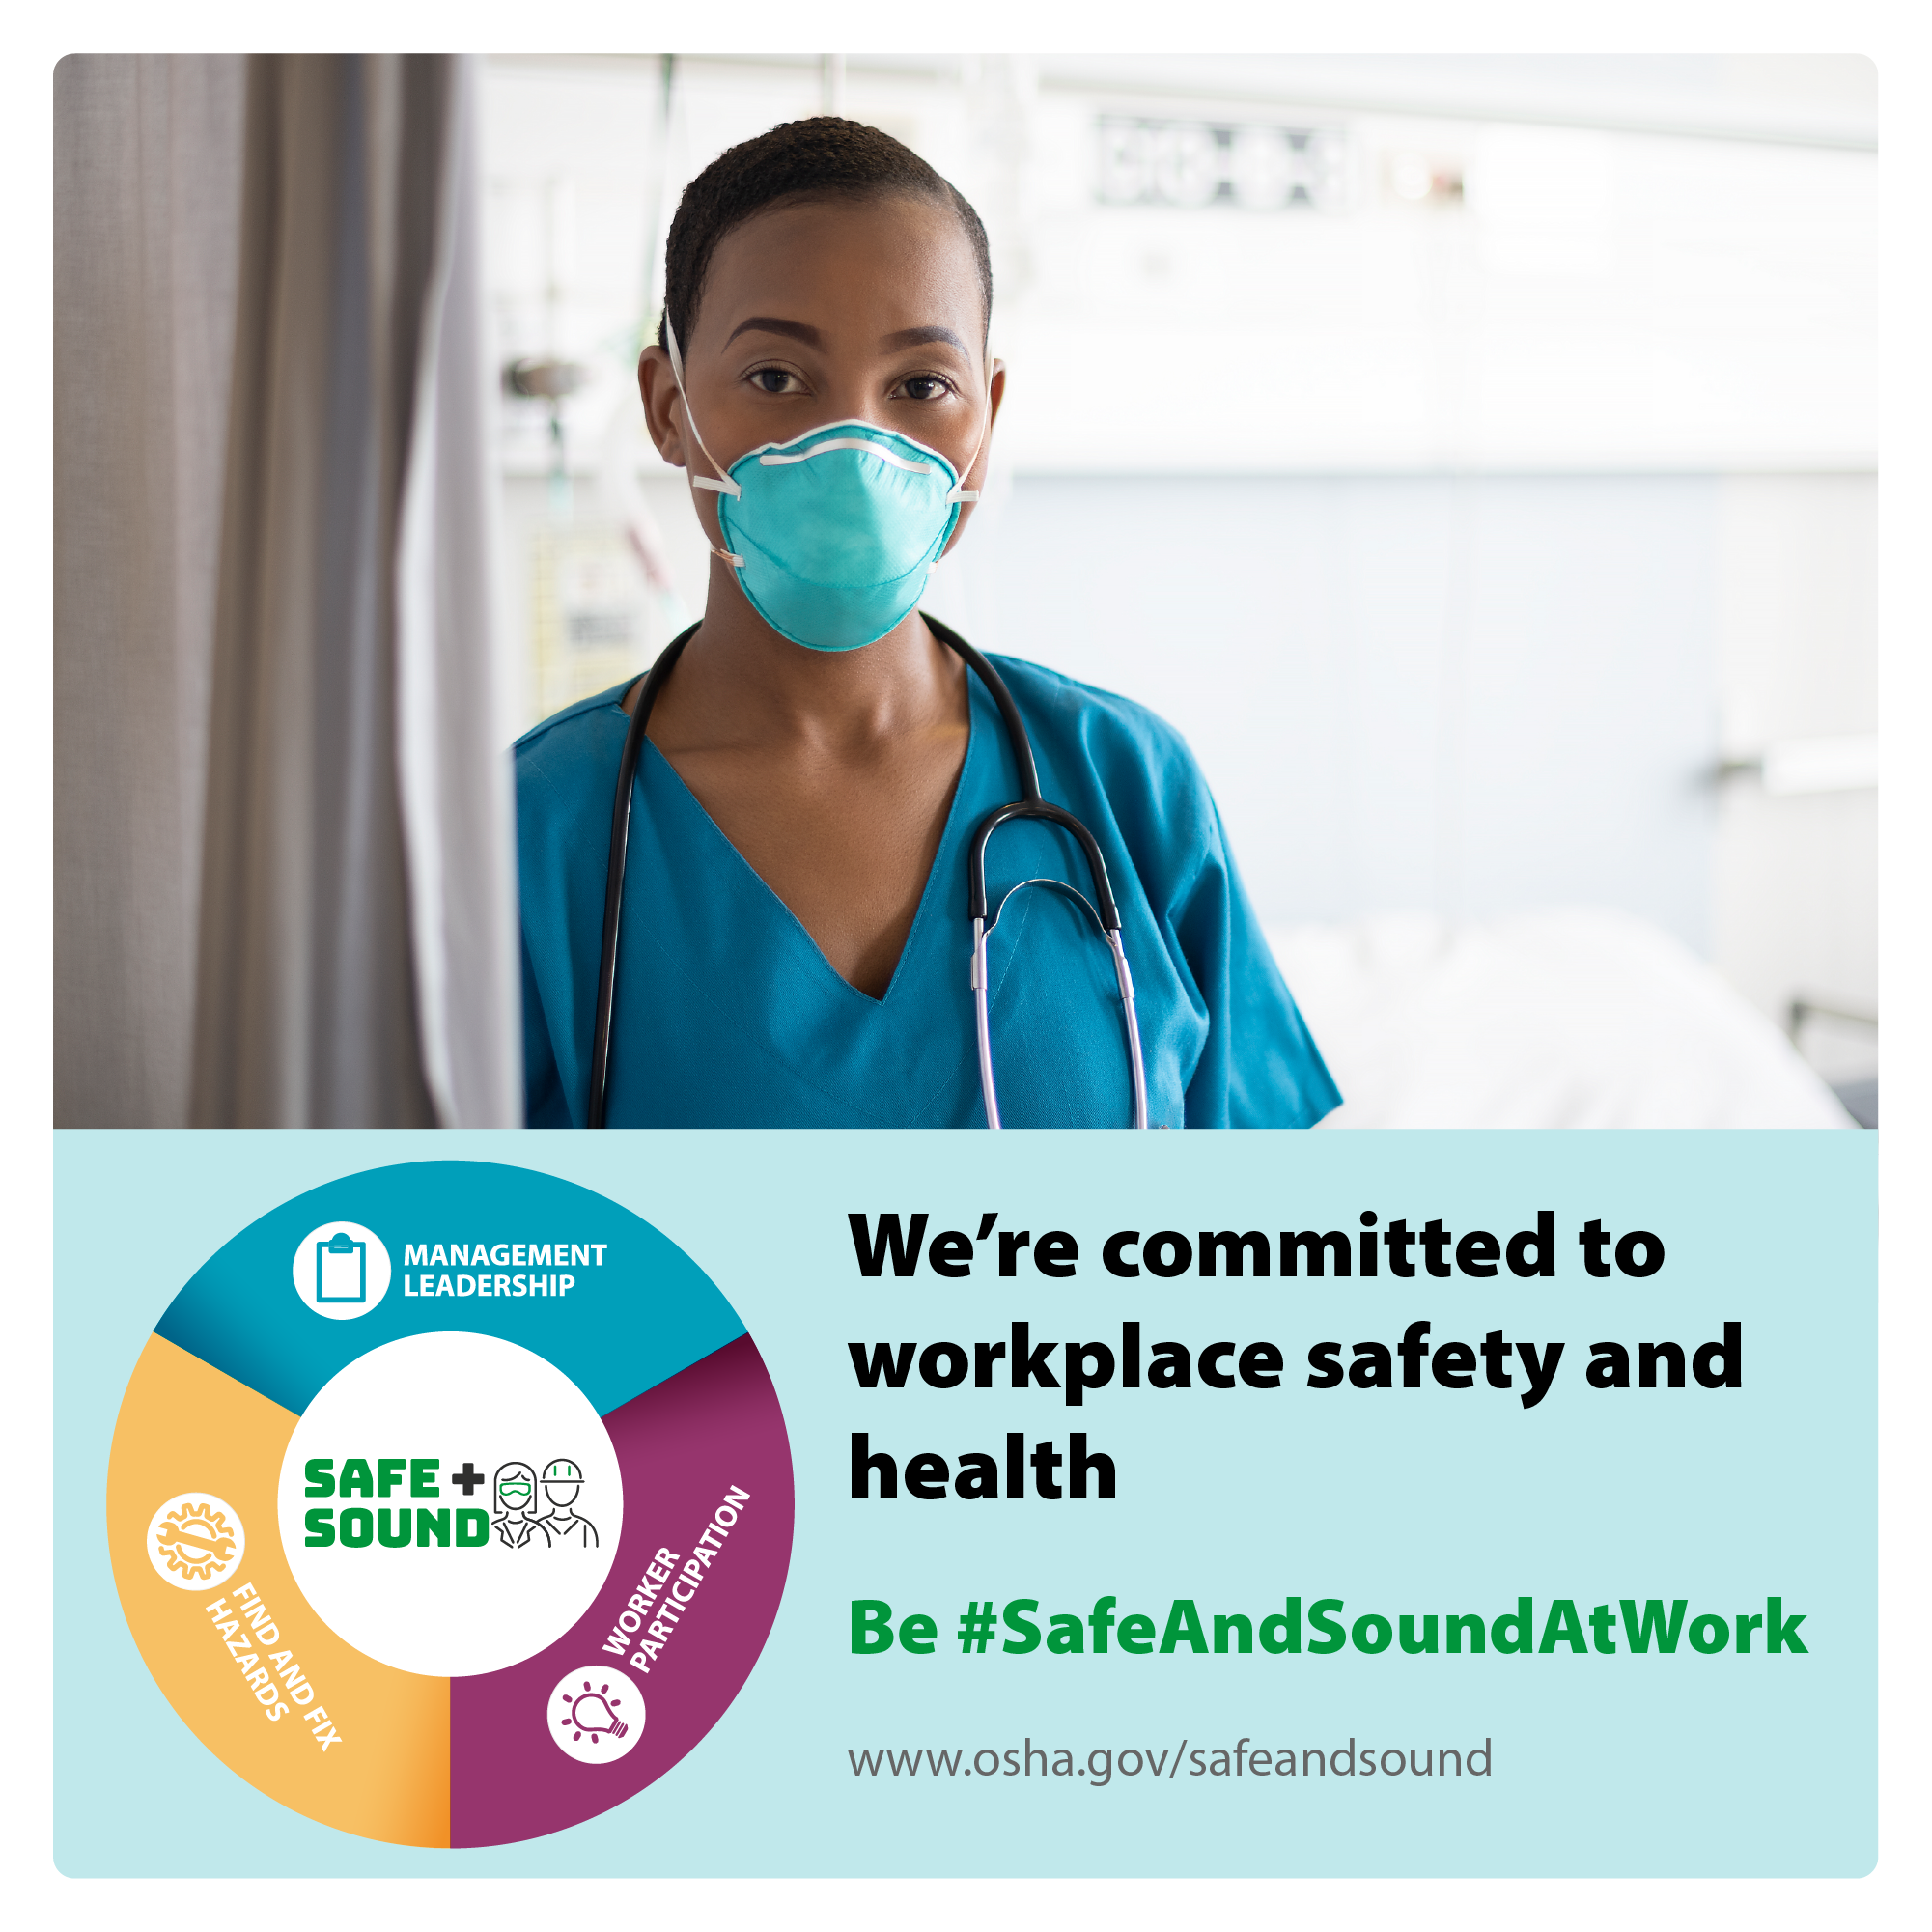 Image of a healthcare worker in a mask with a stethoscope around her neck, with the text: We're committed to workplace safety and health be #SafeAndSoundAtWork - www.osha.gov/safeandsound